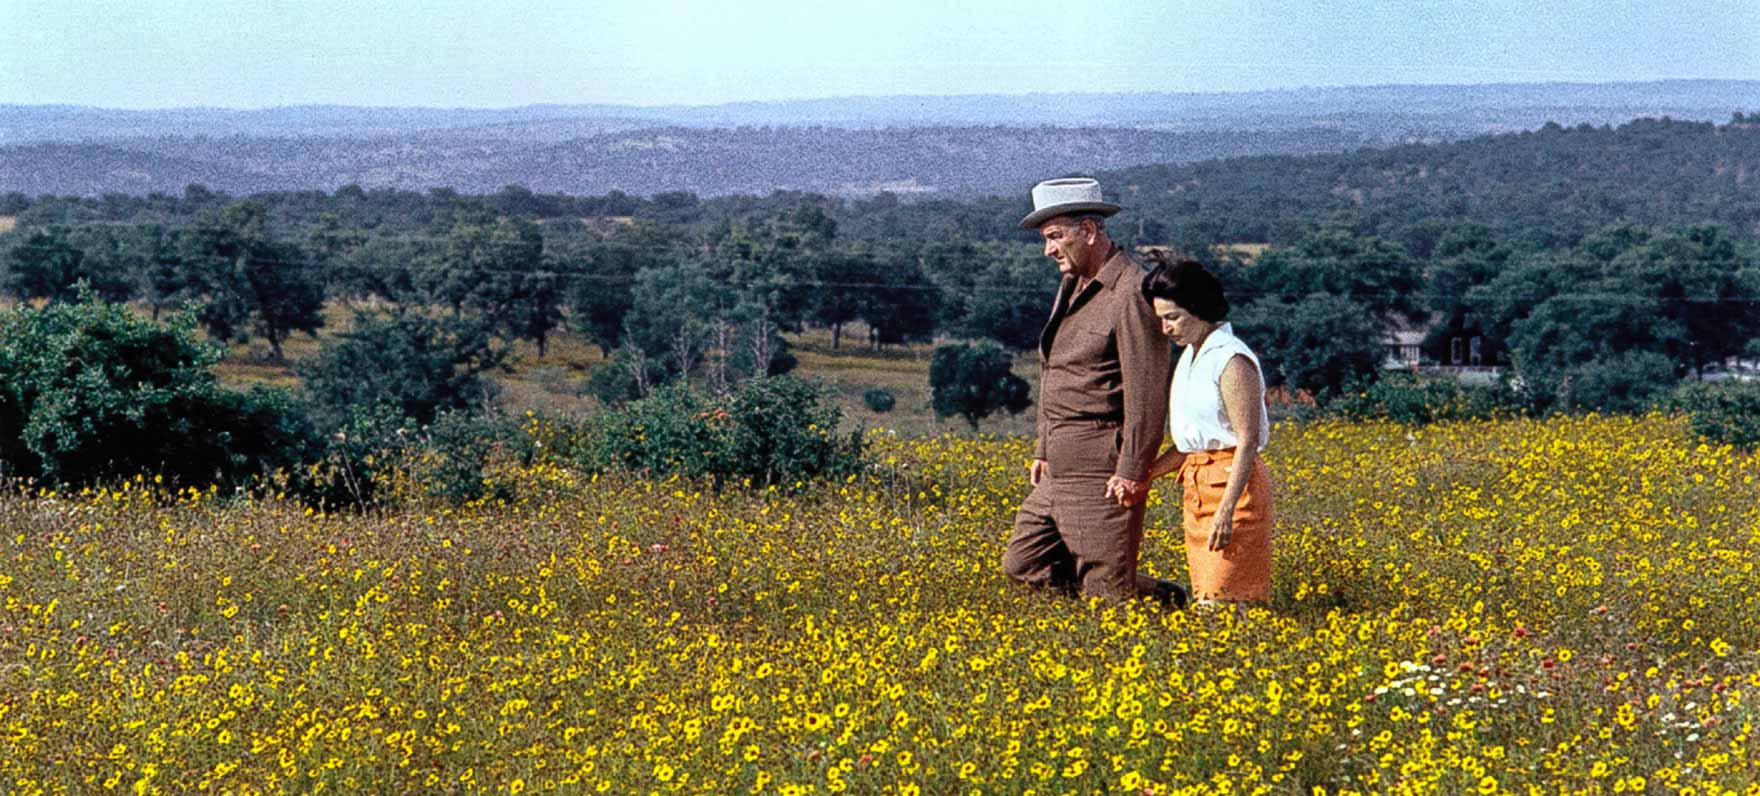 LBJ and Lady Bird enjoying the wildflowers in his beloved Texas Hill Country.